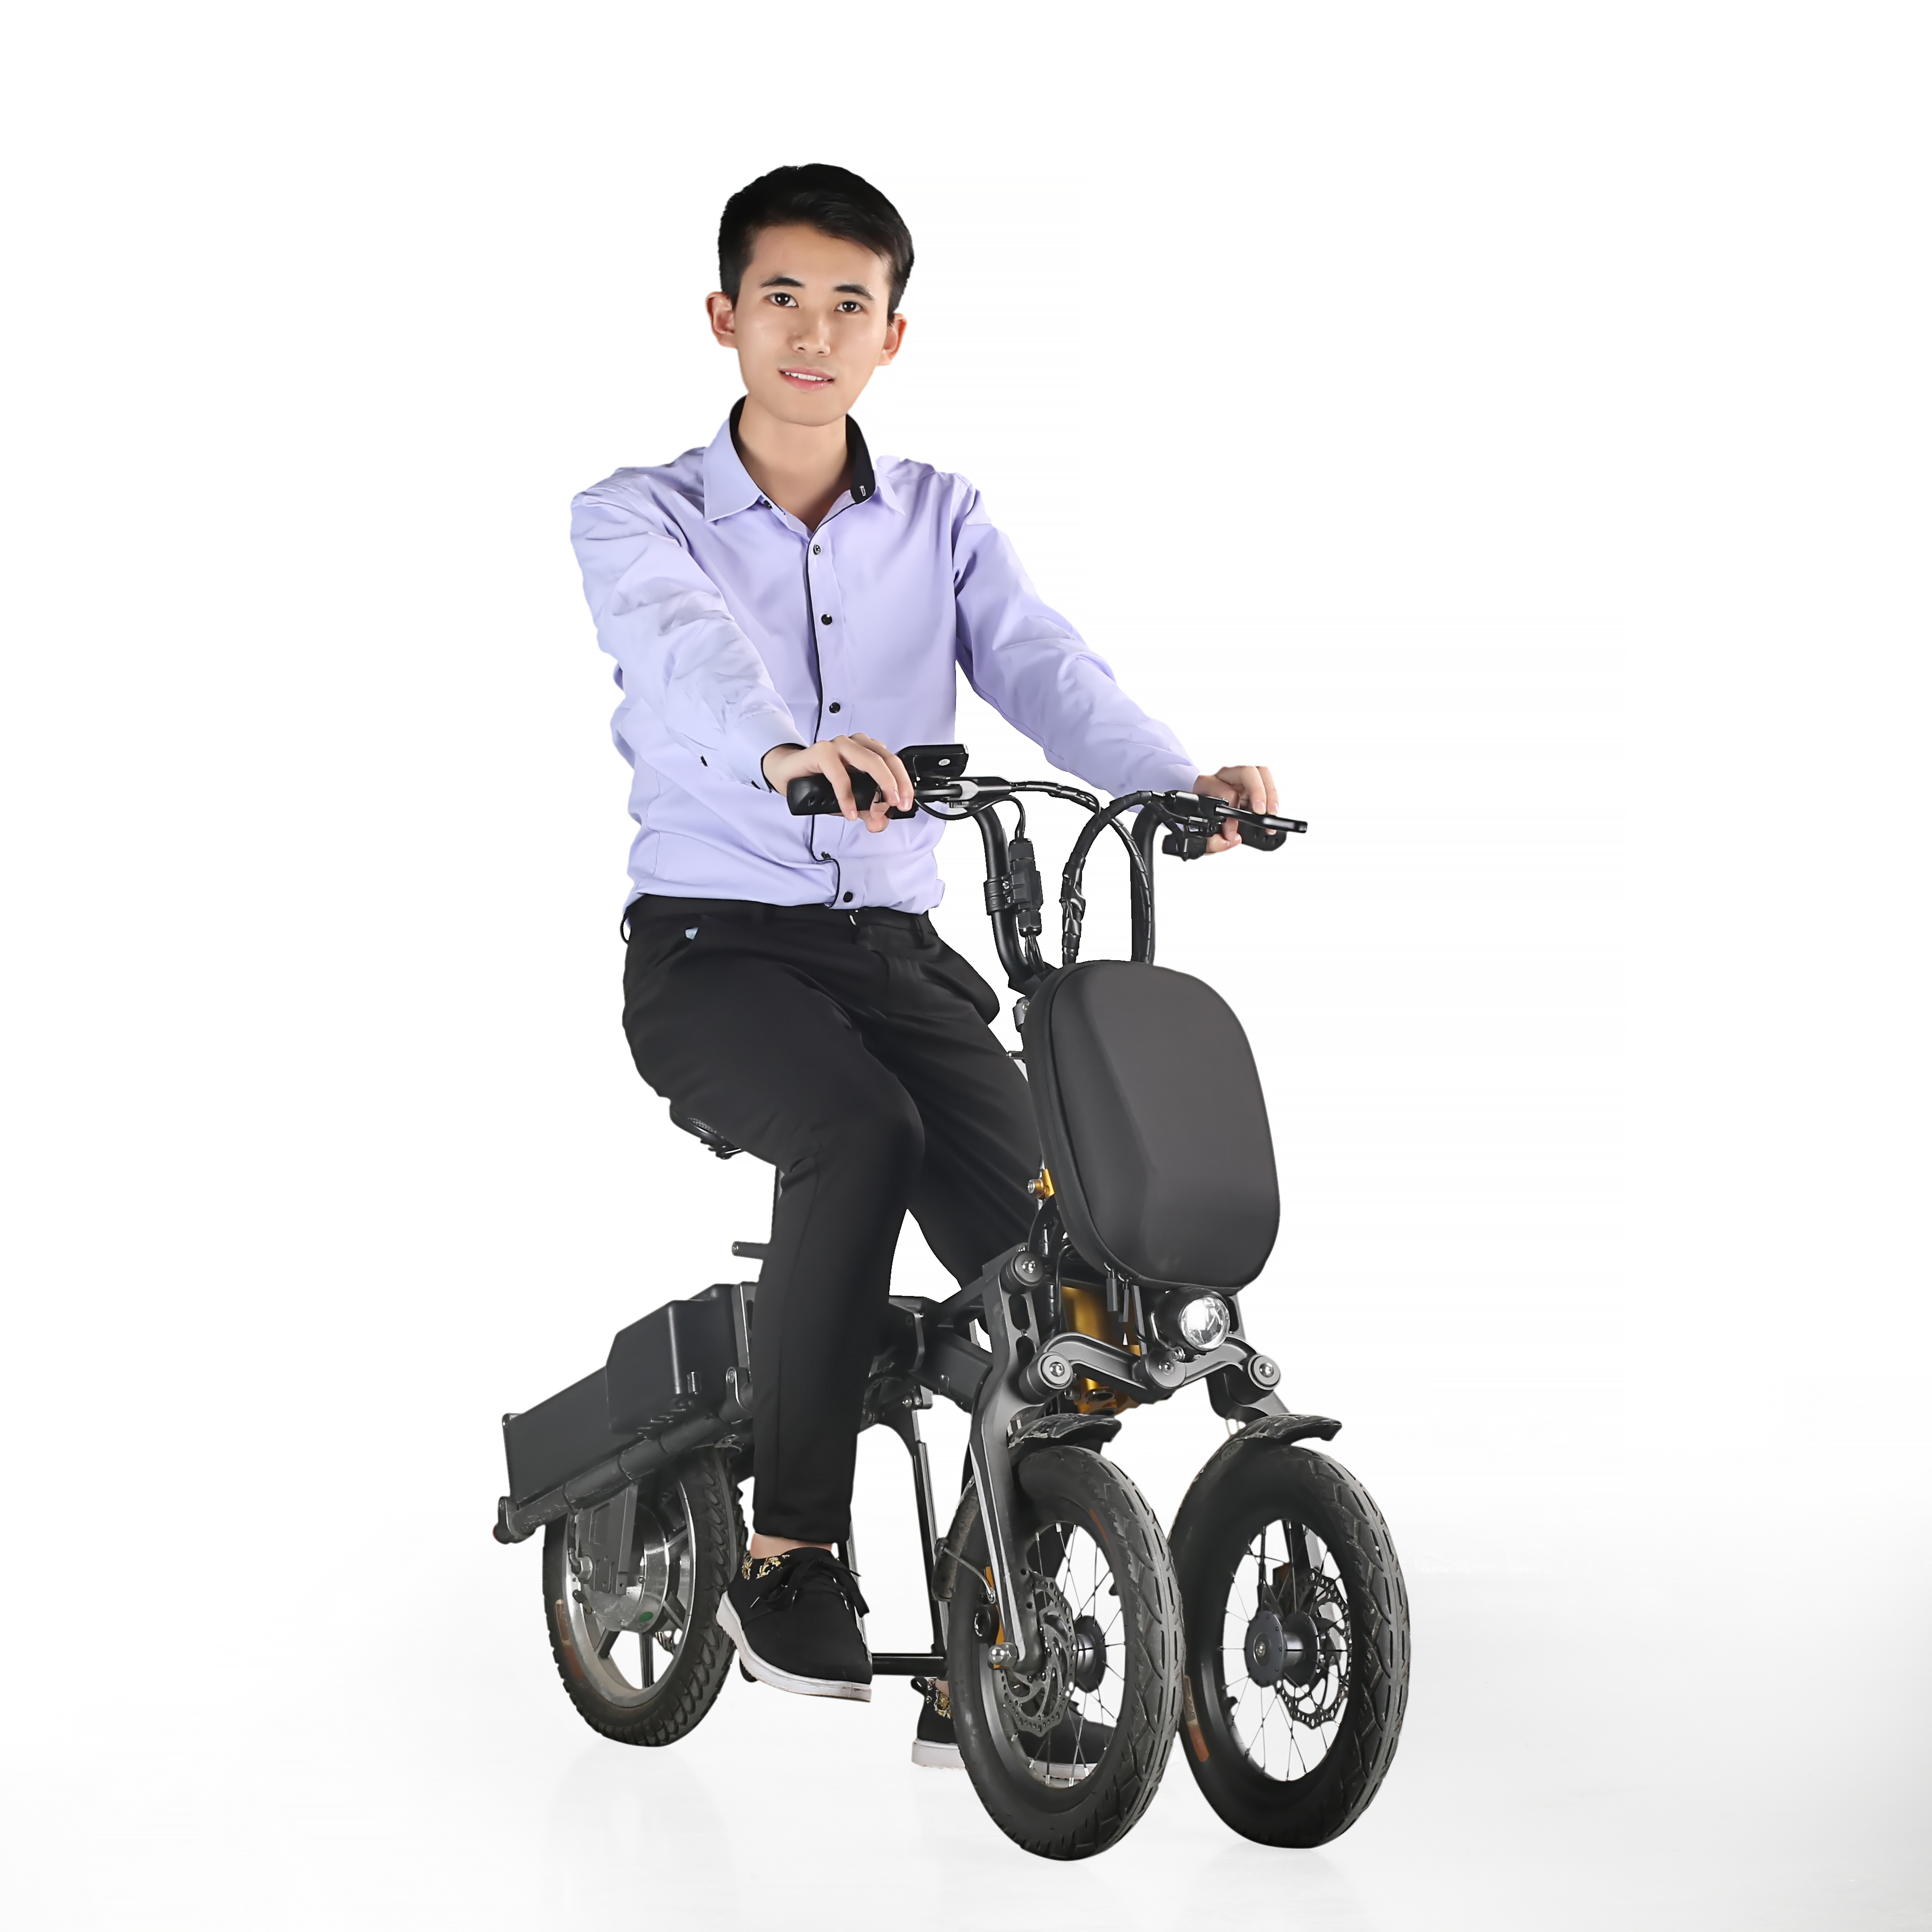 The Best Seller EcoRider E6-7 250W 36V Electric Bike <strong>Folding</strong> with Lithium Battery